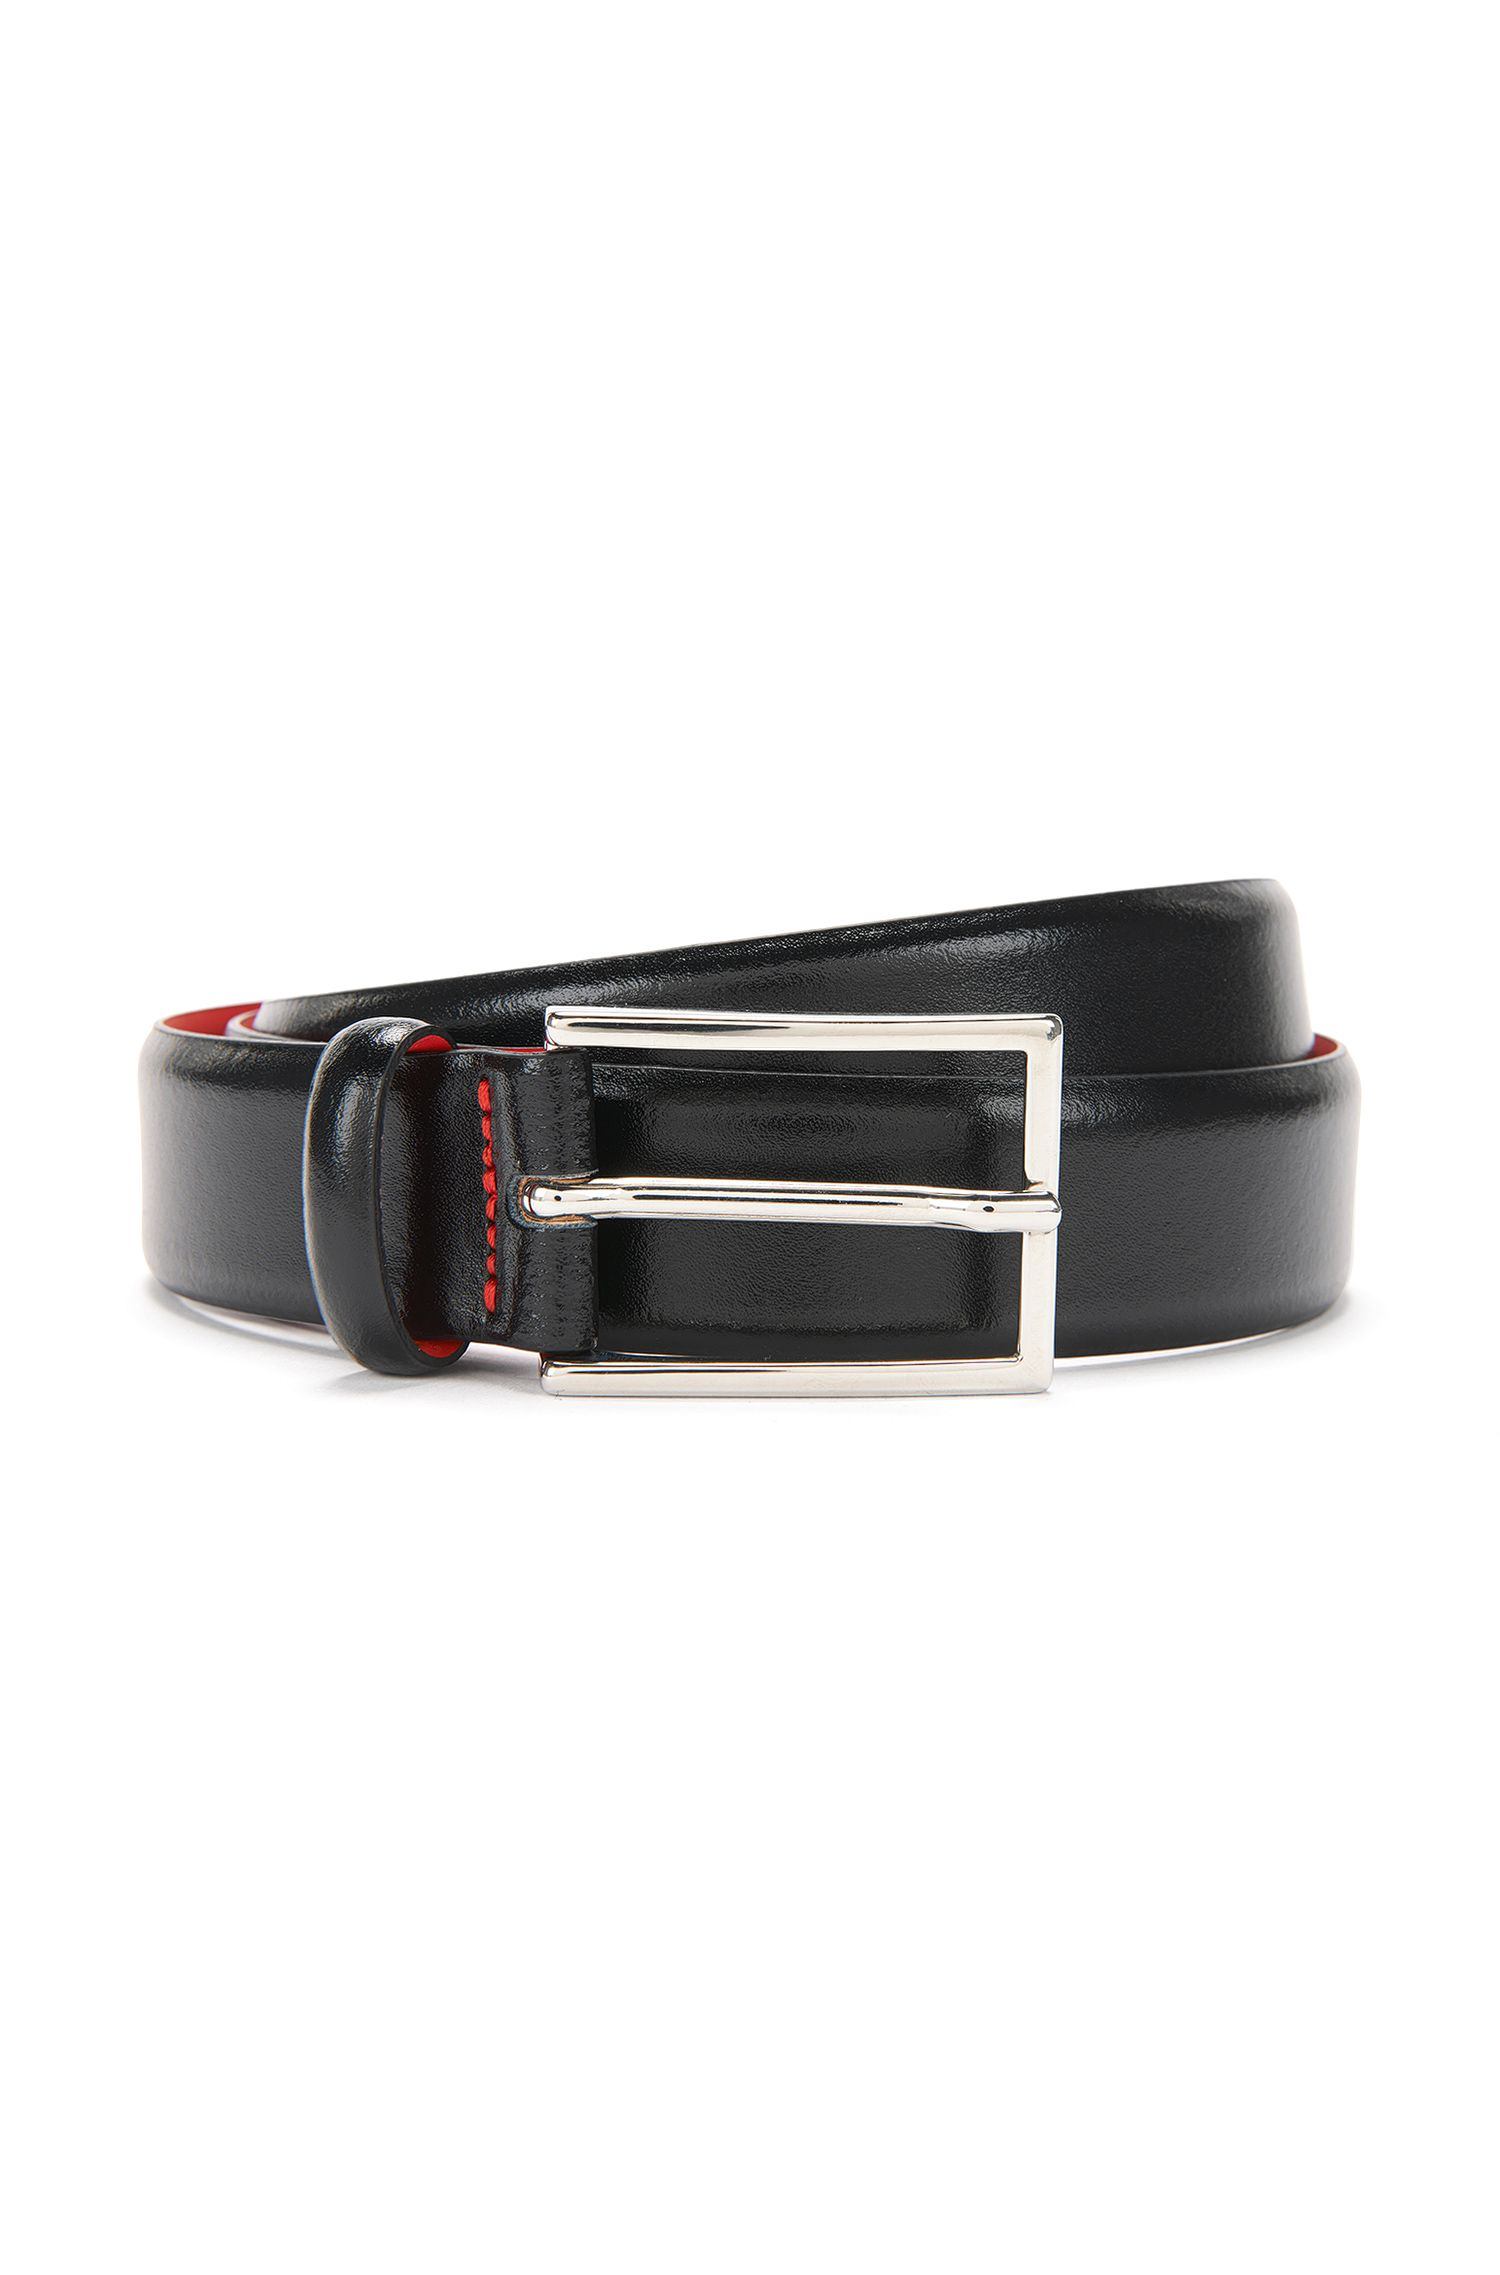 Polished Italian leather belt by HUGO Man, Black